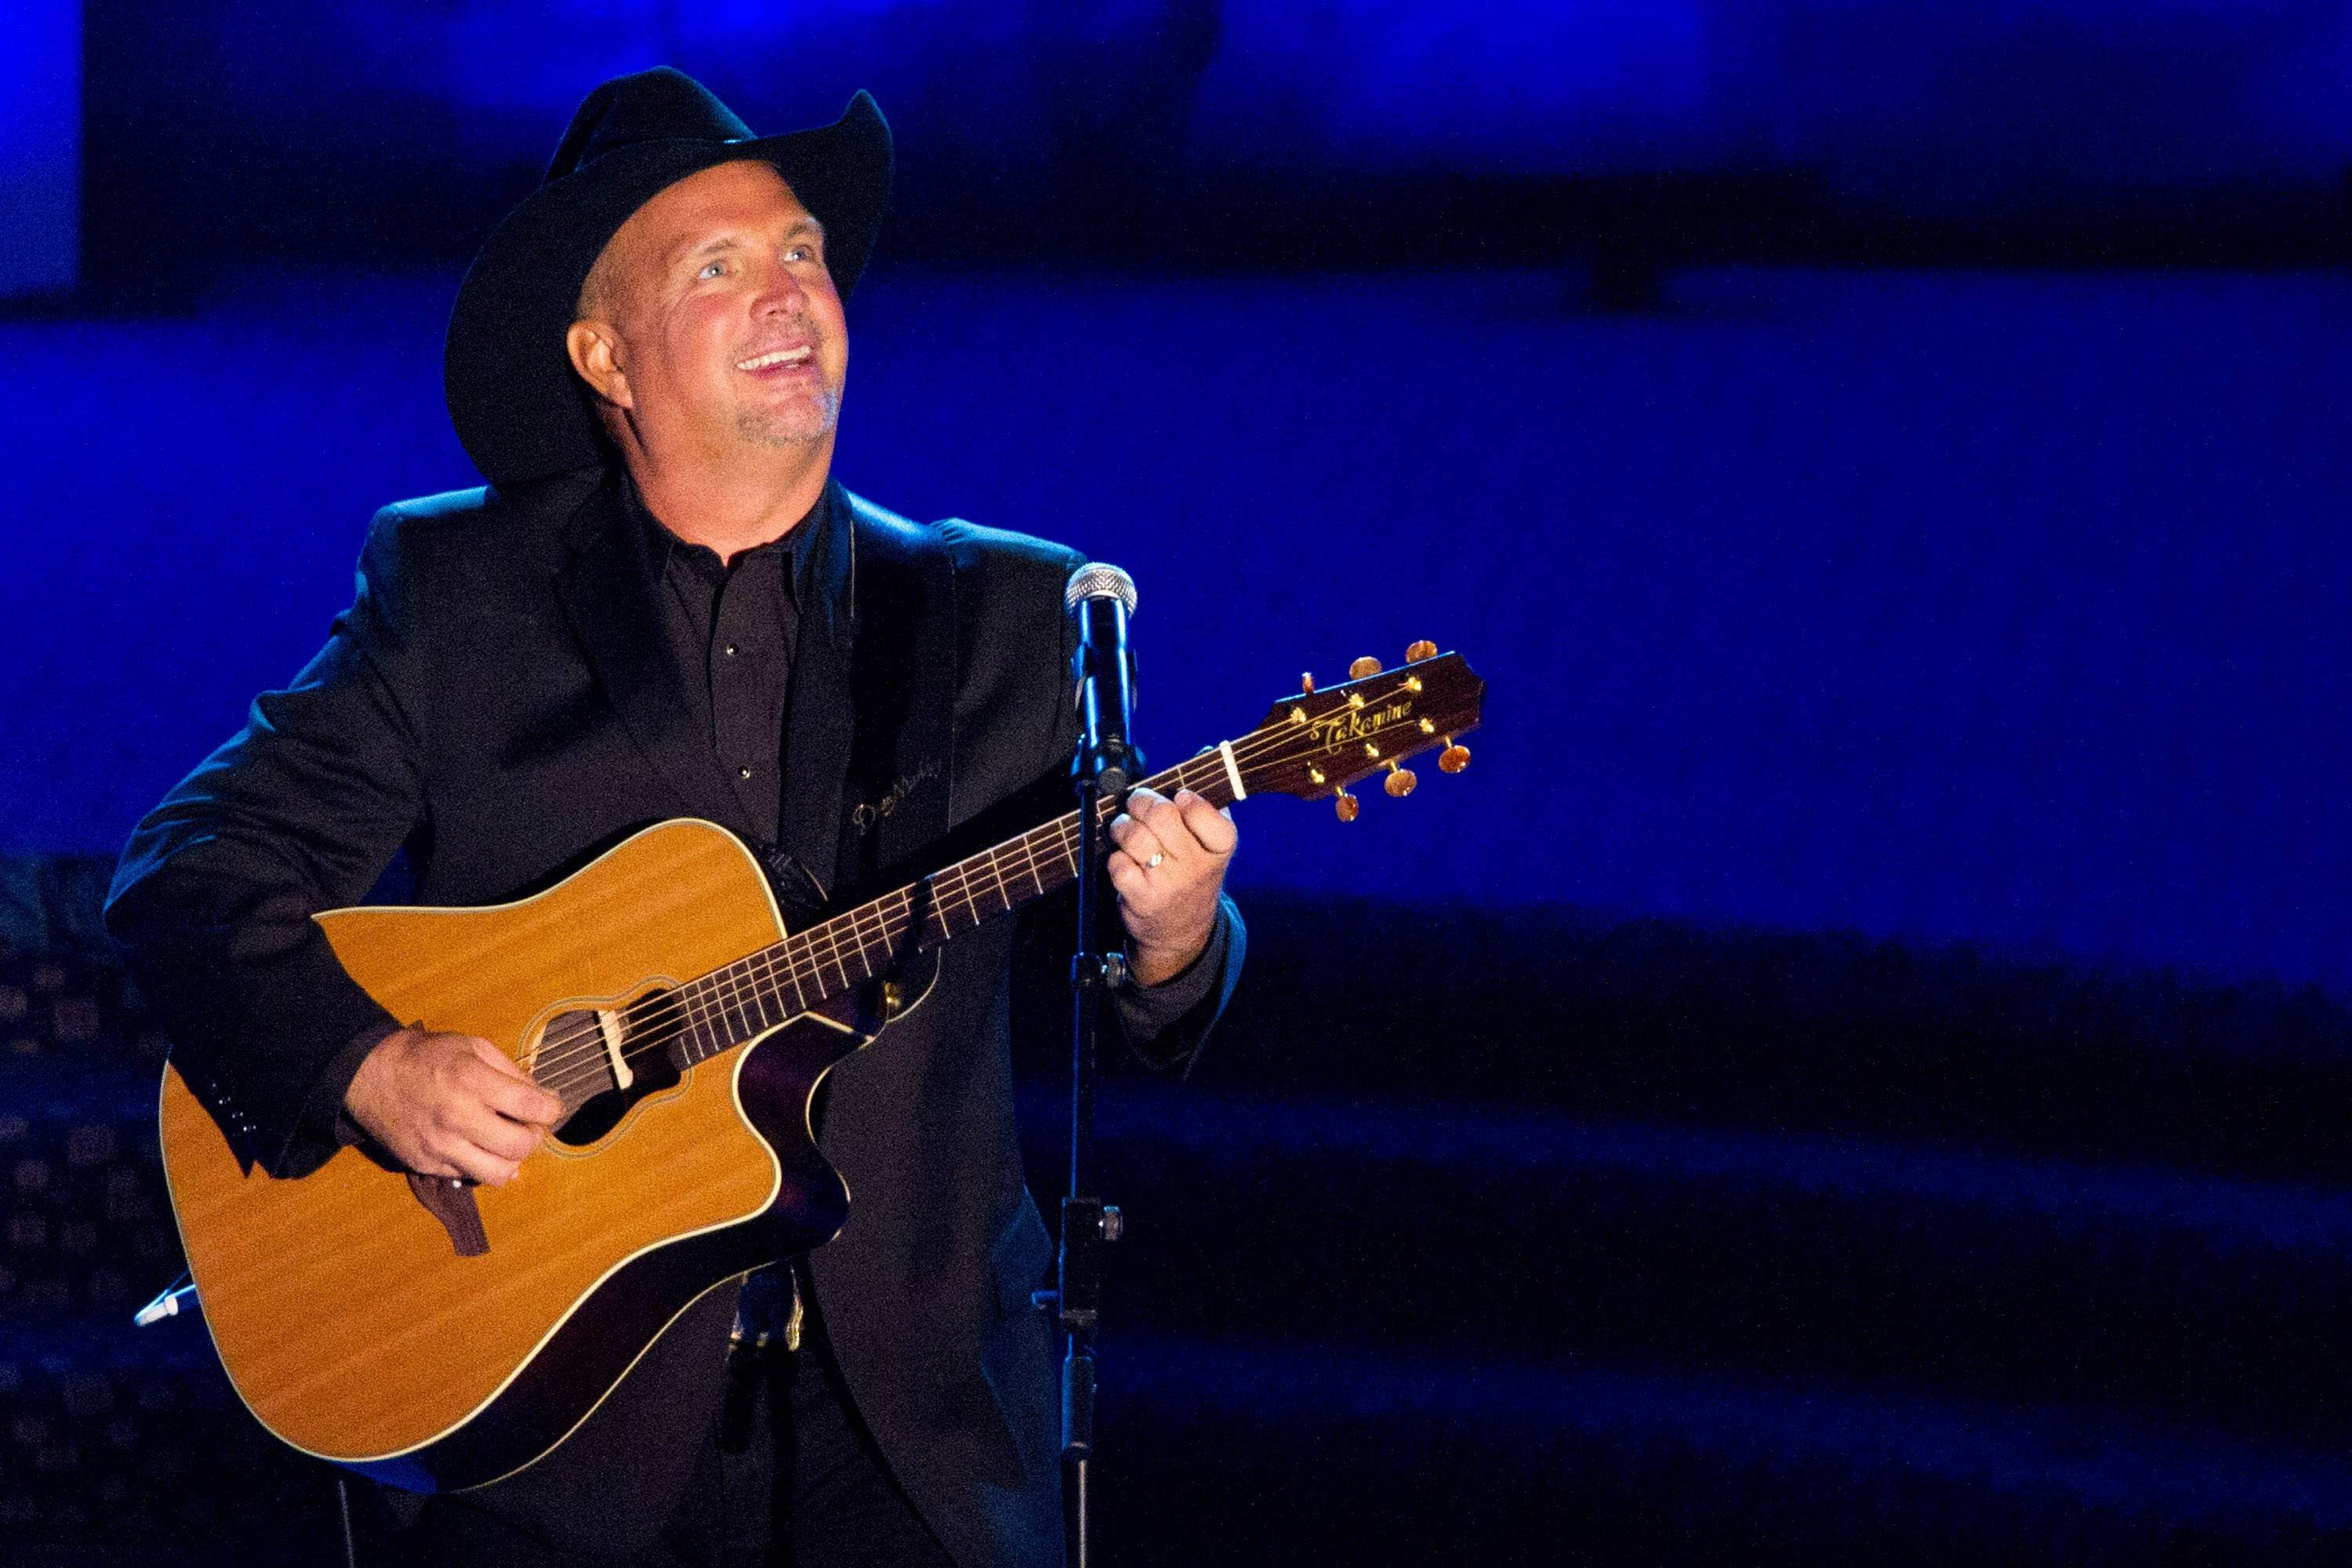 Country superstar Garth Brooks opens his world tour on Thursday Sept. 4, with a performance at the Allstate Arena in Rosemont.